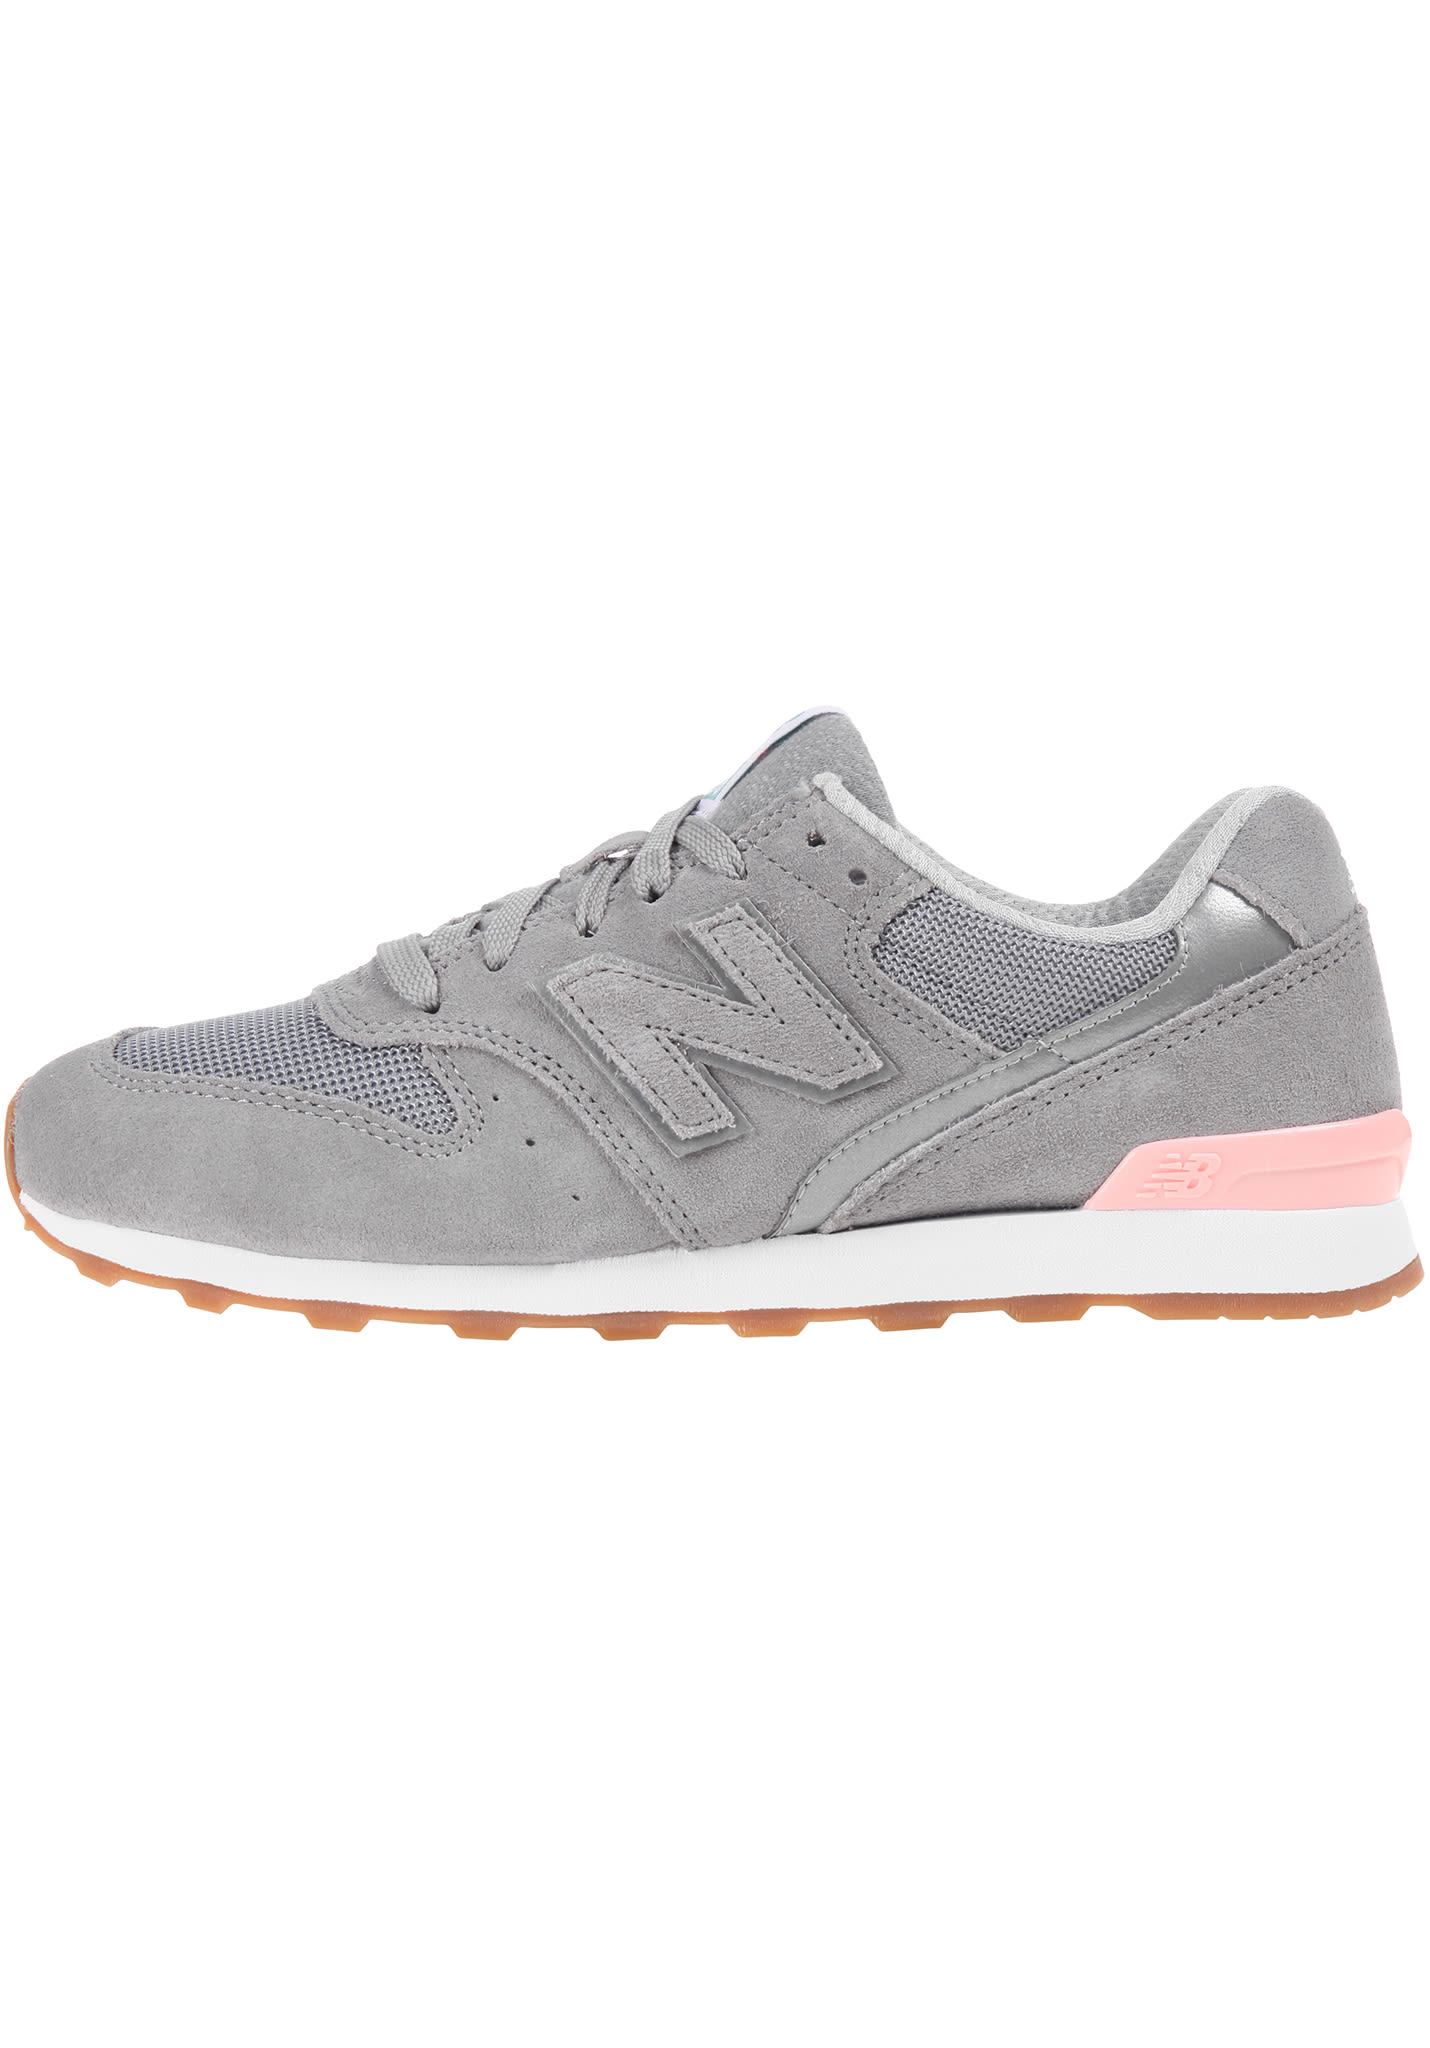 new balance wr996 grey pink Sale,up to 65% Discounts